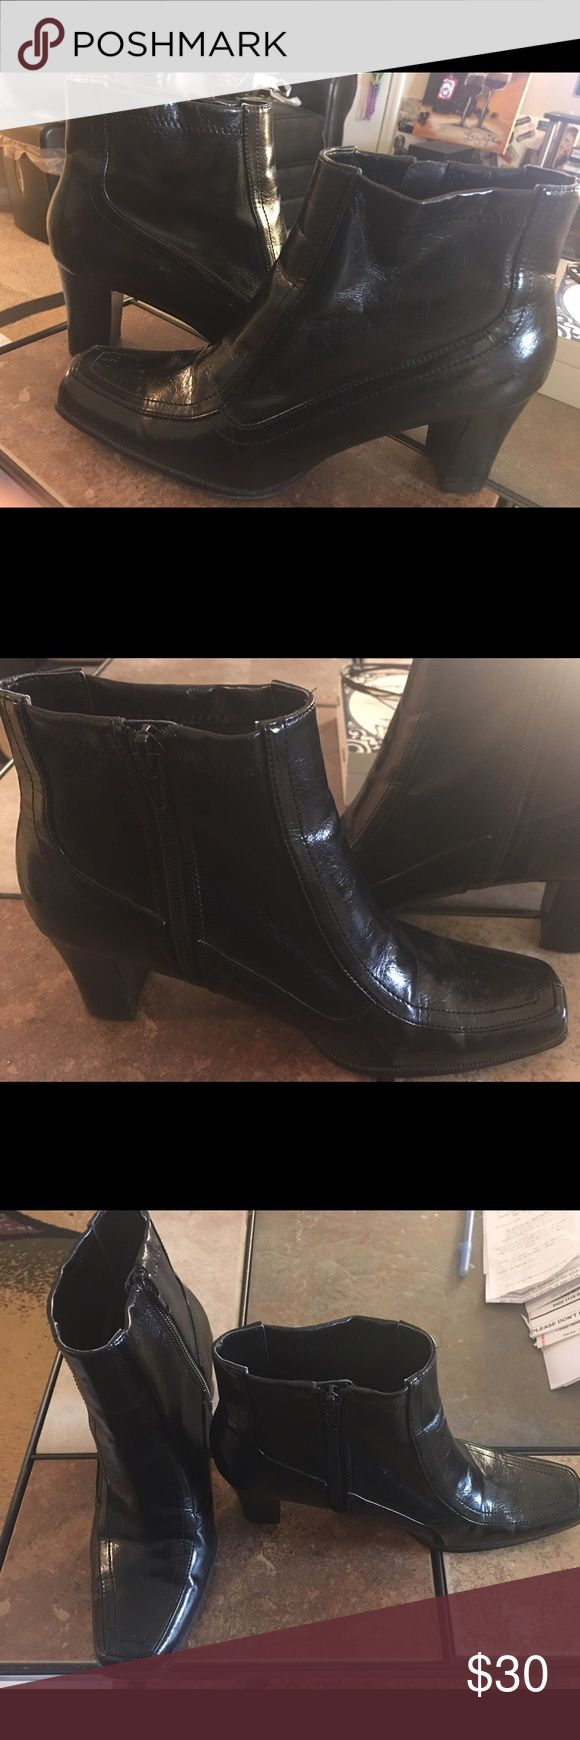 """Nickels Ladies Black Leather Booties Gently used soft black leather side zipper ankle boots with block heel. Apprx 1.5"""" heel. No scuff marks. Great condition. Size 7M. nickles Shoes Ankle Boots & Booties"""